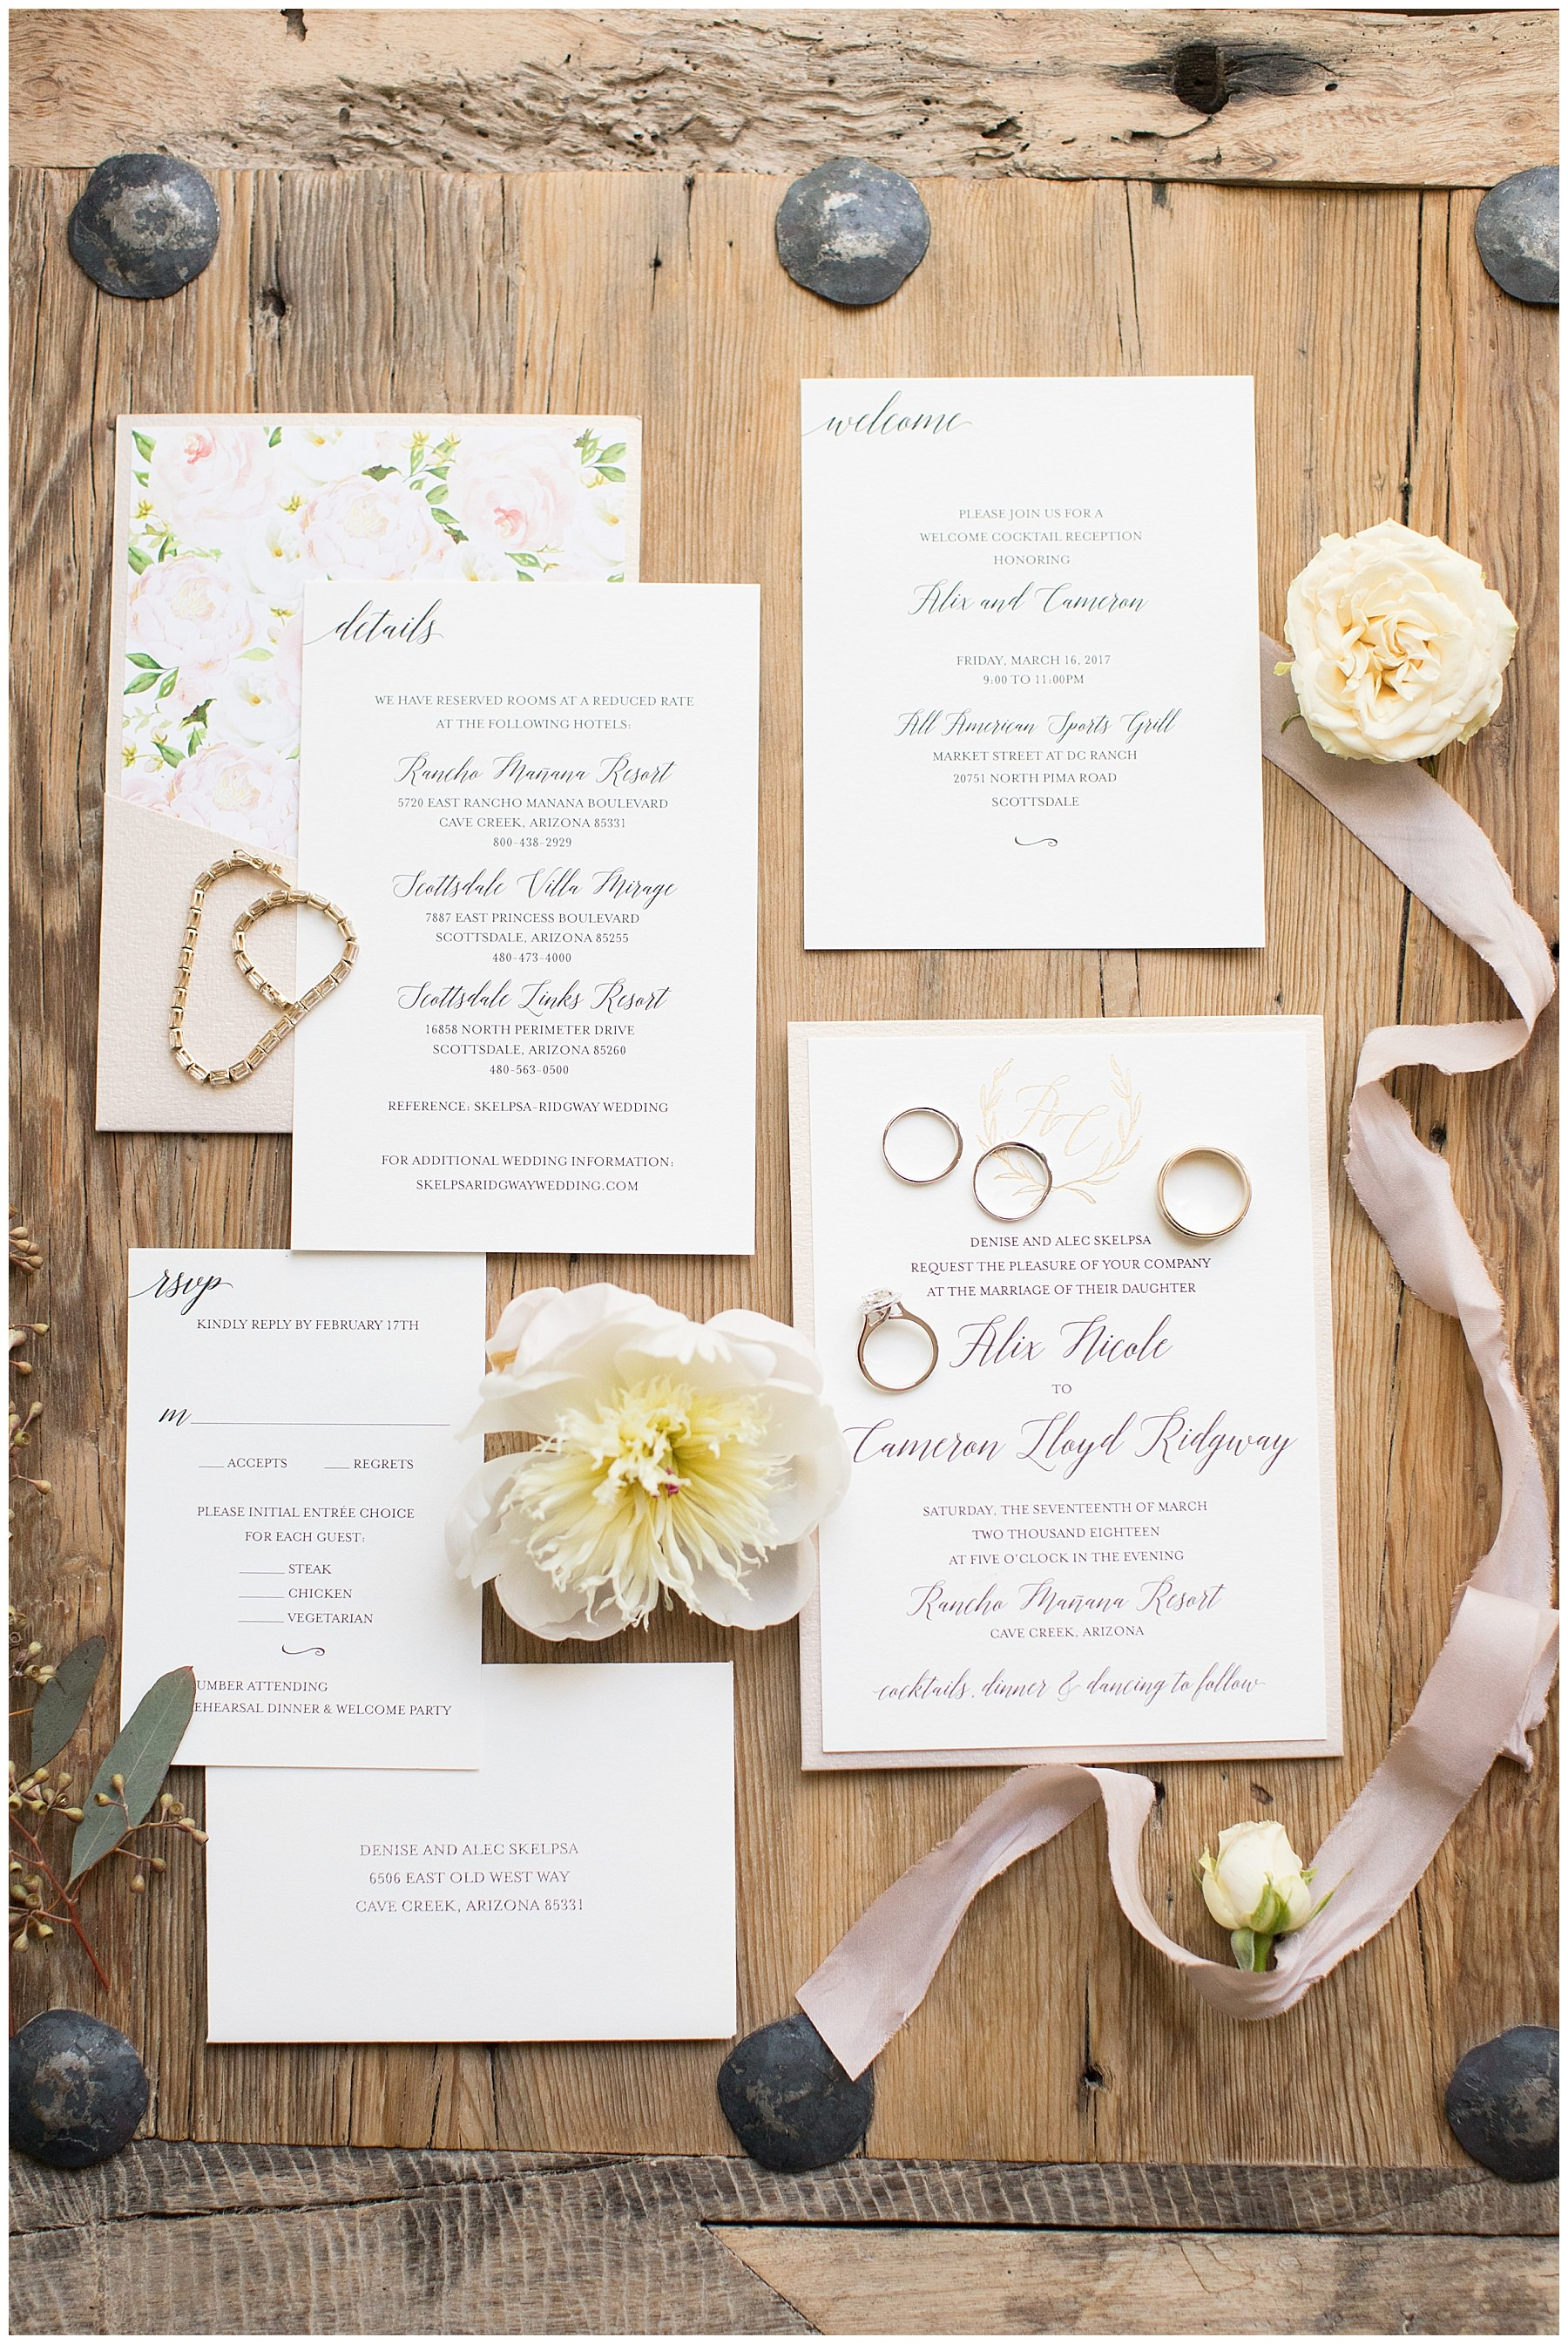 Styled wedding invitation